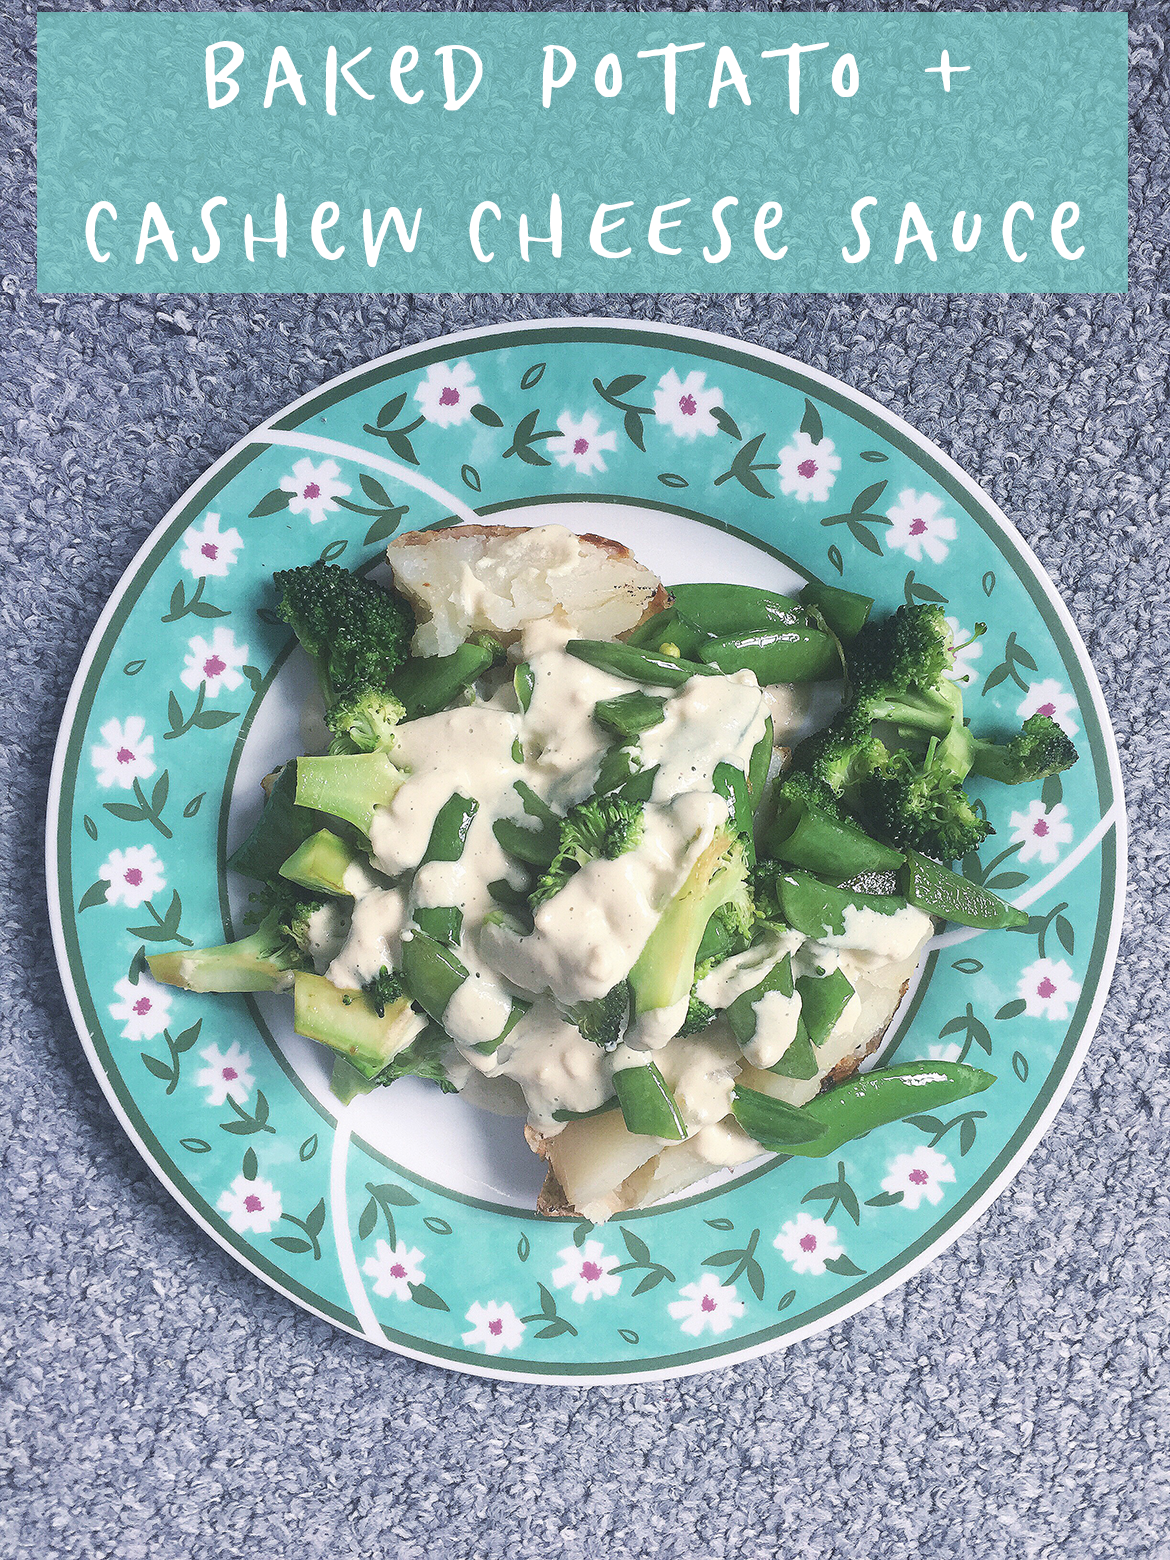 baked potato with cashew cheese sauce living on leaves vegan family meal ideas